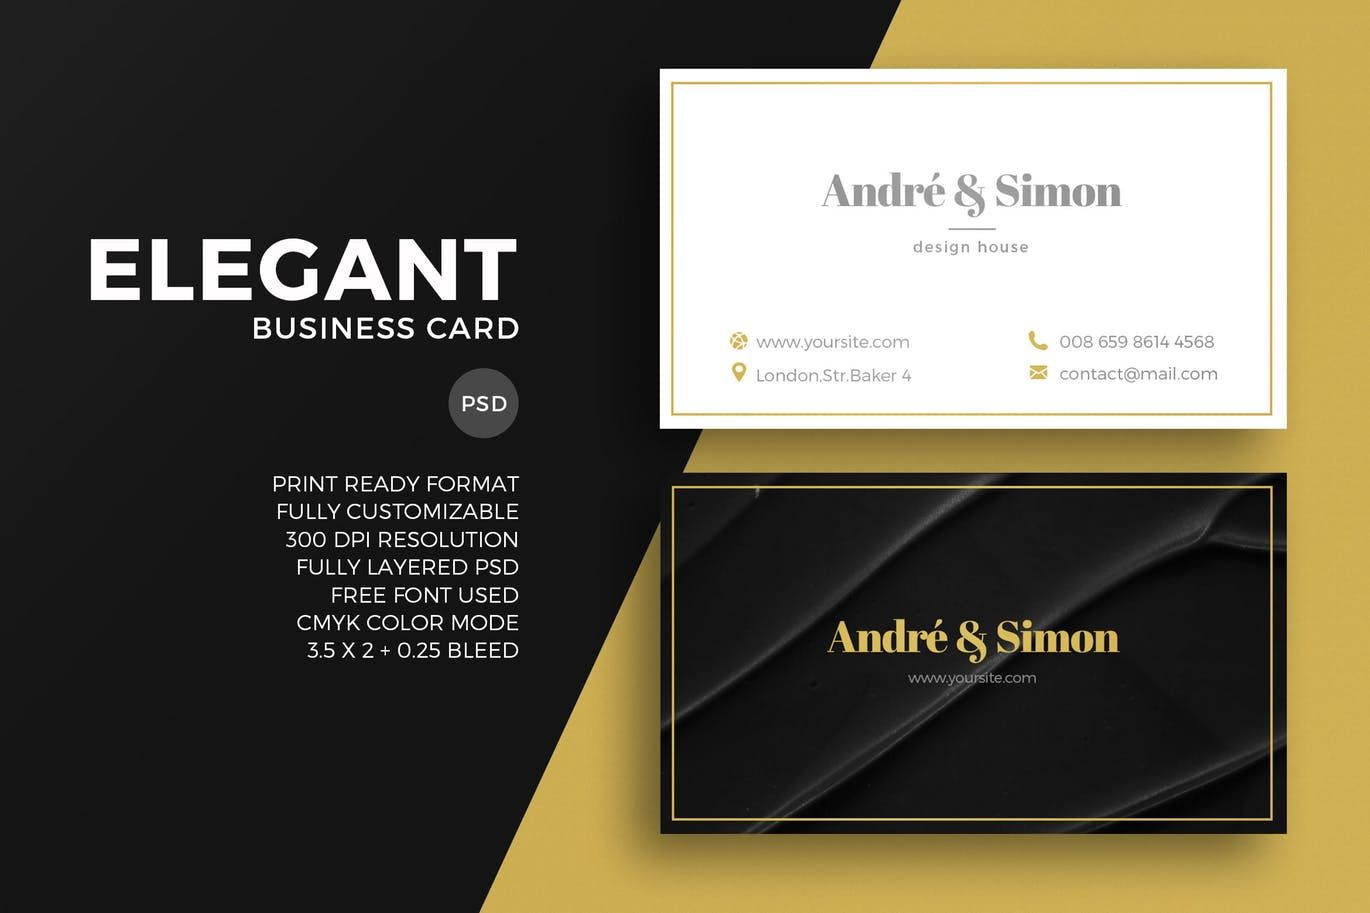 Elegant Business Card Template PSD | Business Card Templates ...